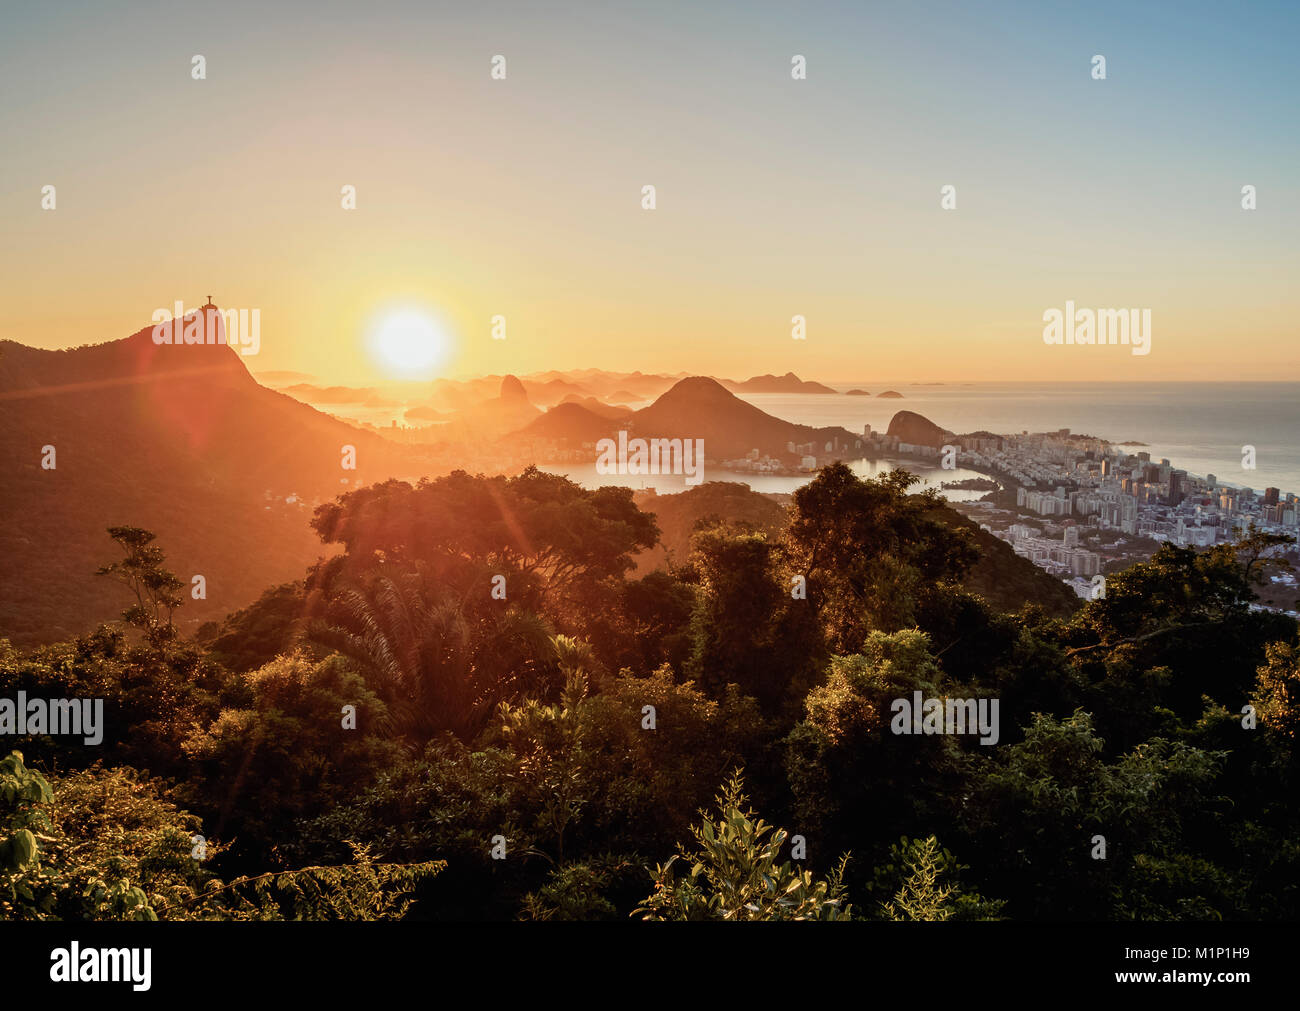 View from Vista Chinesa over Tijuca Forest towards Rio de Janeiro at sunrise, Brazil, South America Stock Photo